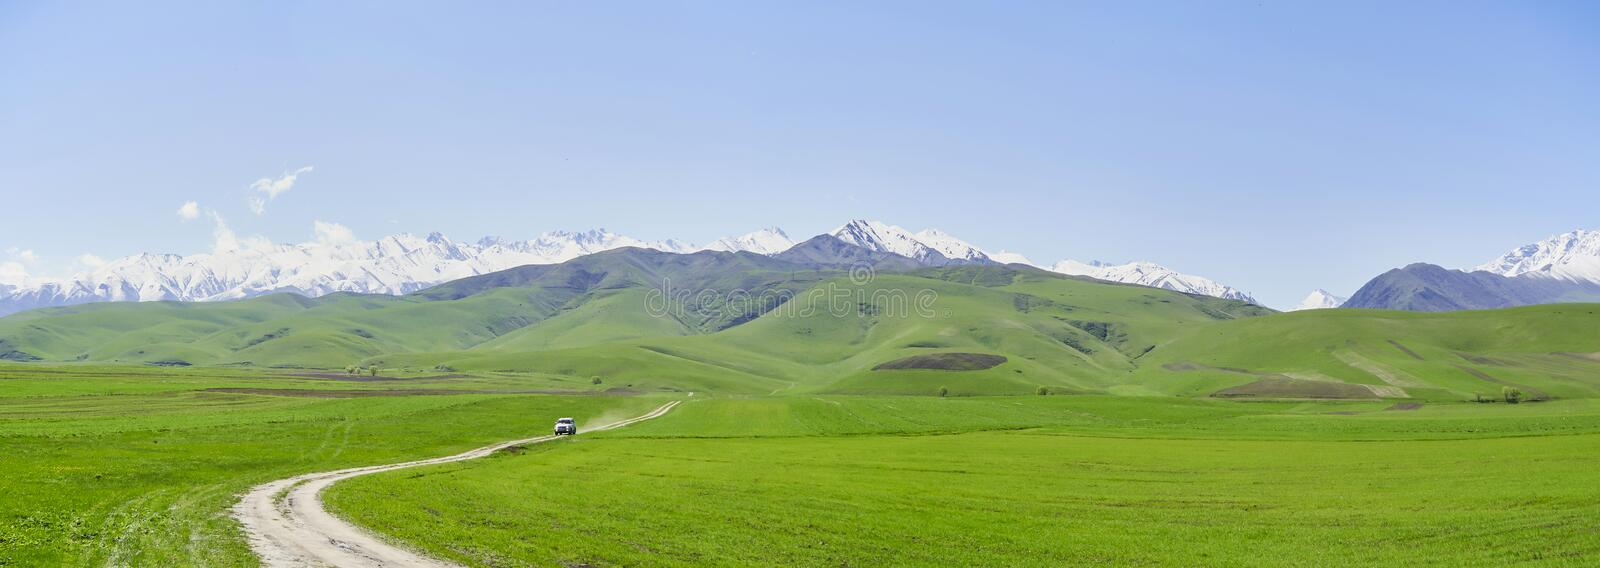 Panorama, mountain landscape, in the foreground young green grass against the backdrop of a mountain range with snowy peaks royalty free stock image